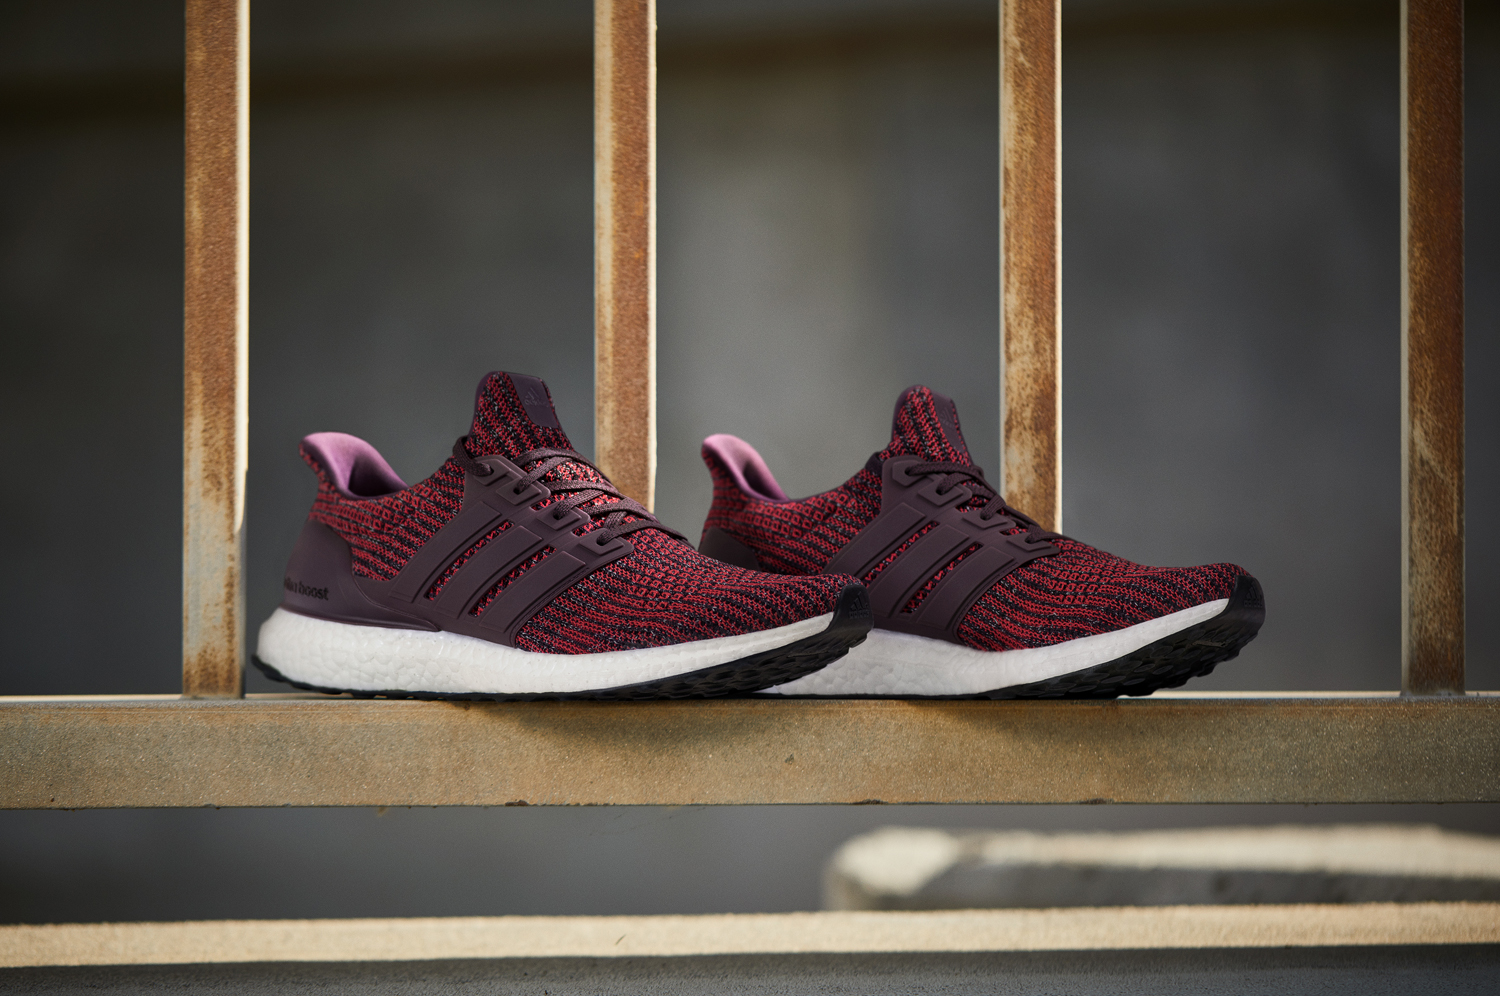 adidas Unveils New Ultra Boost Colorways for Men and Women